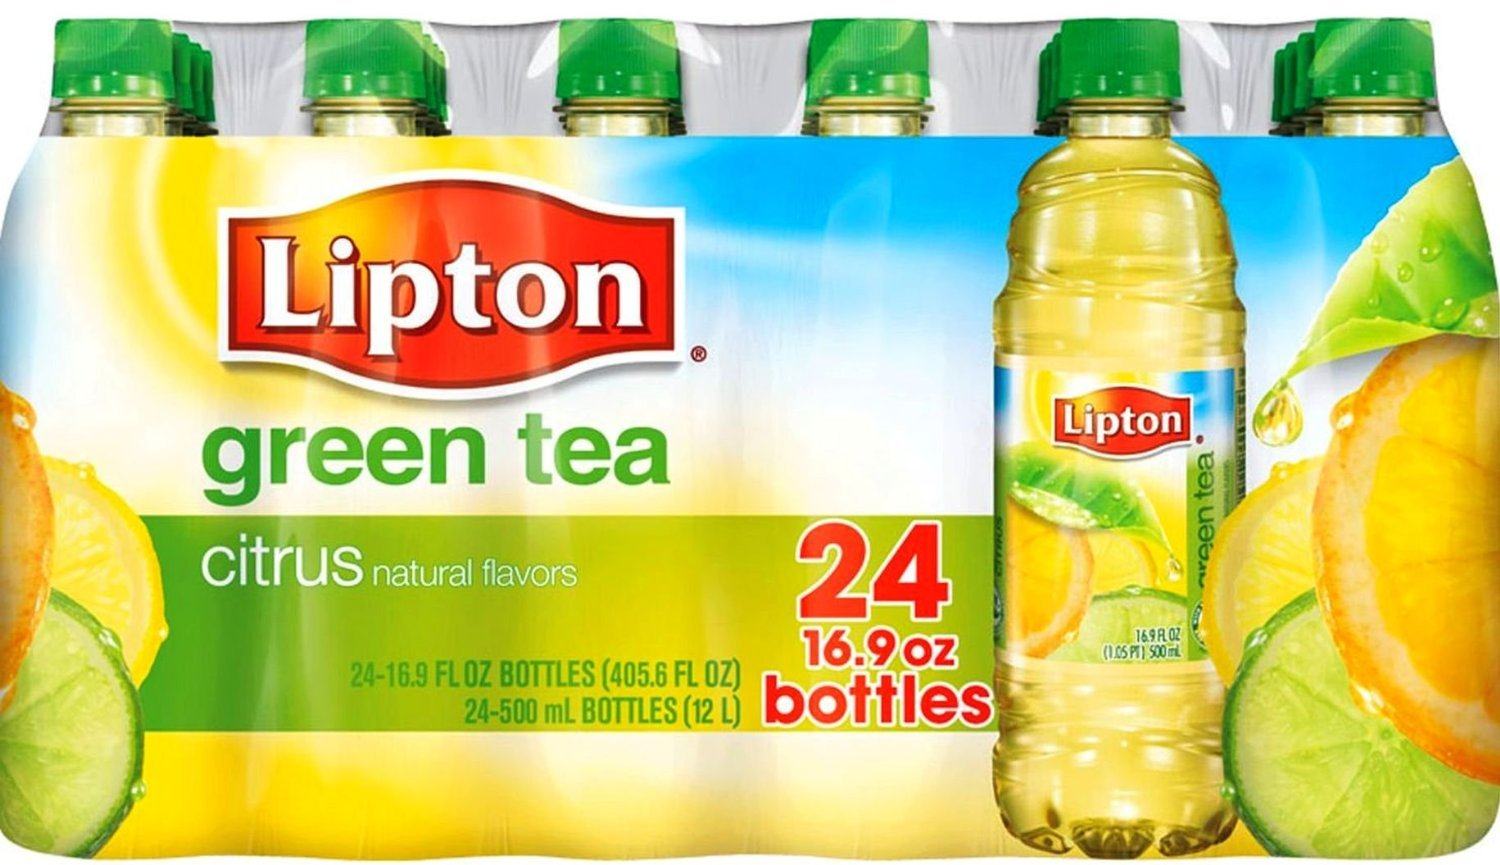 green tea of lipton tea Lipton green tea review from a research team dedicated to finding detailed facts on ingredients, side effects and results this lipton green tea review is the truth you've been looking for.